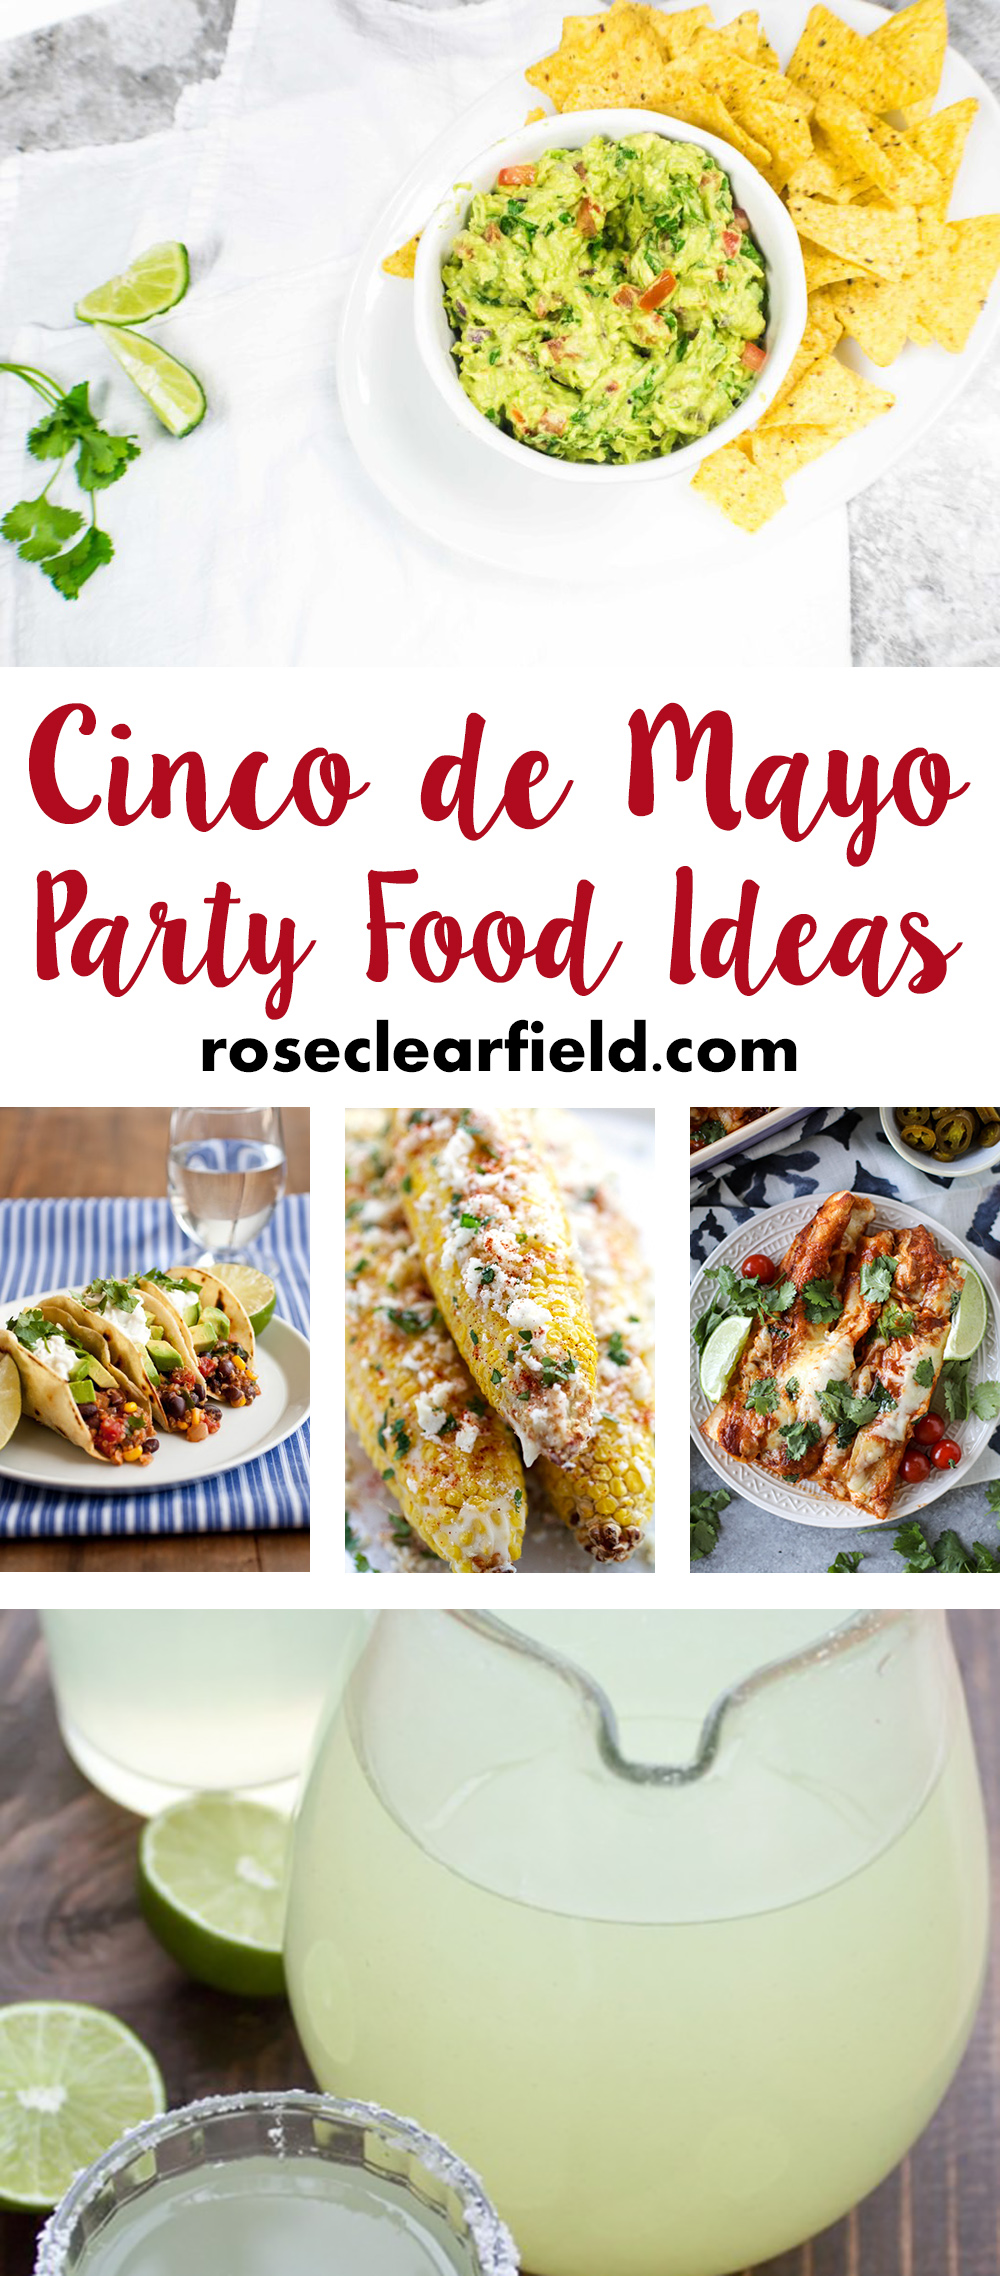 Cinco de Mayo Party Food Ideas | https://www.roseclearfield.com